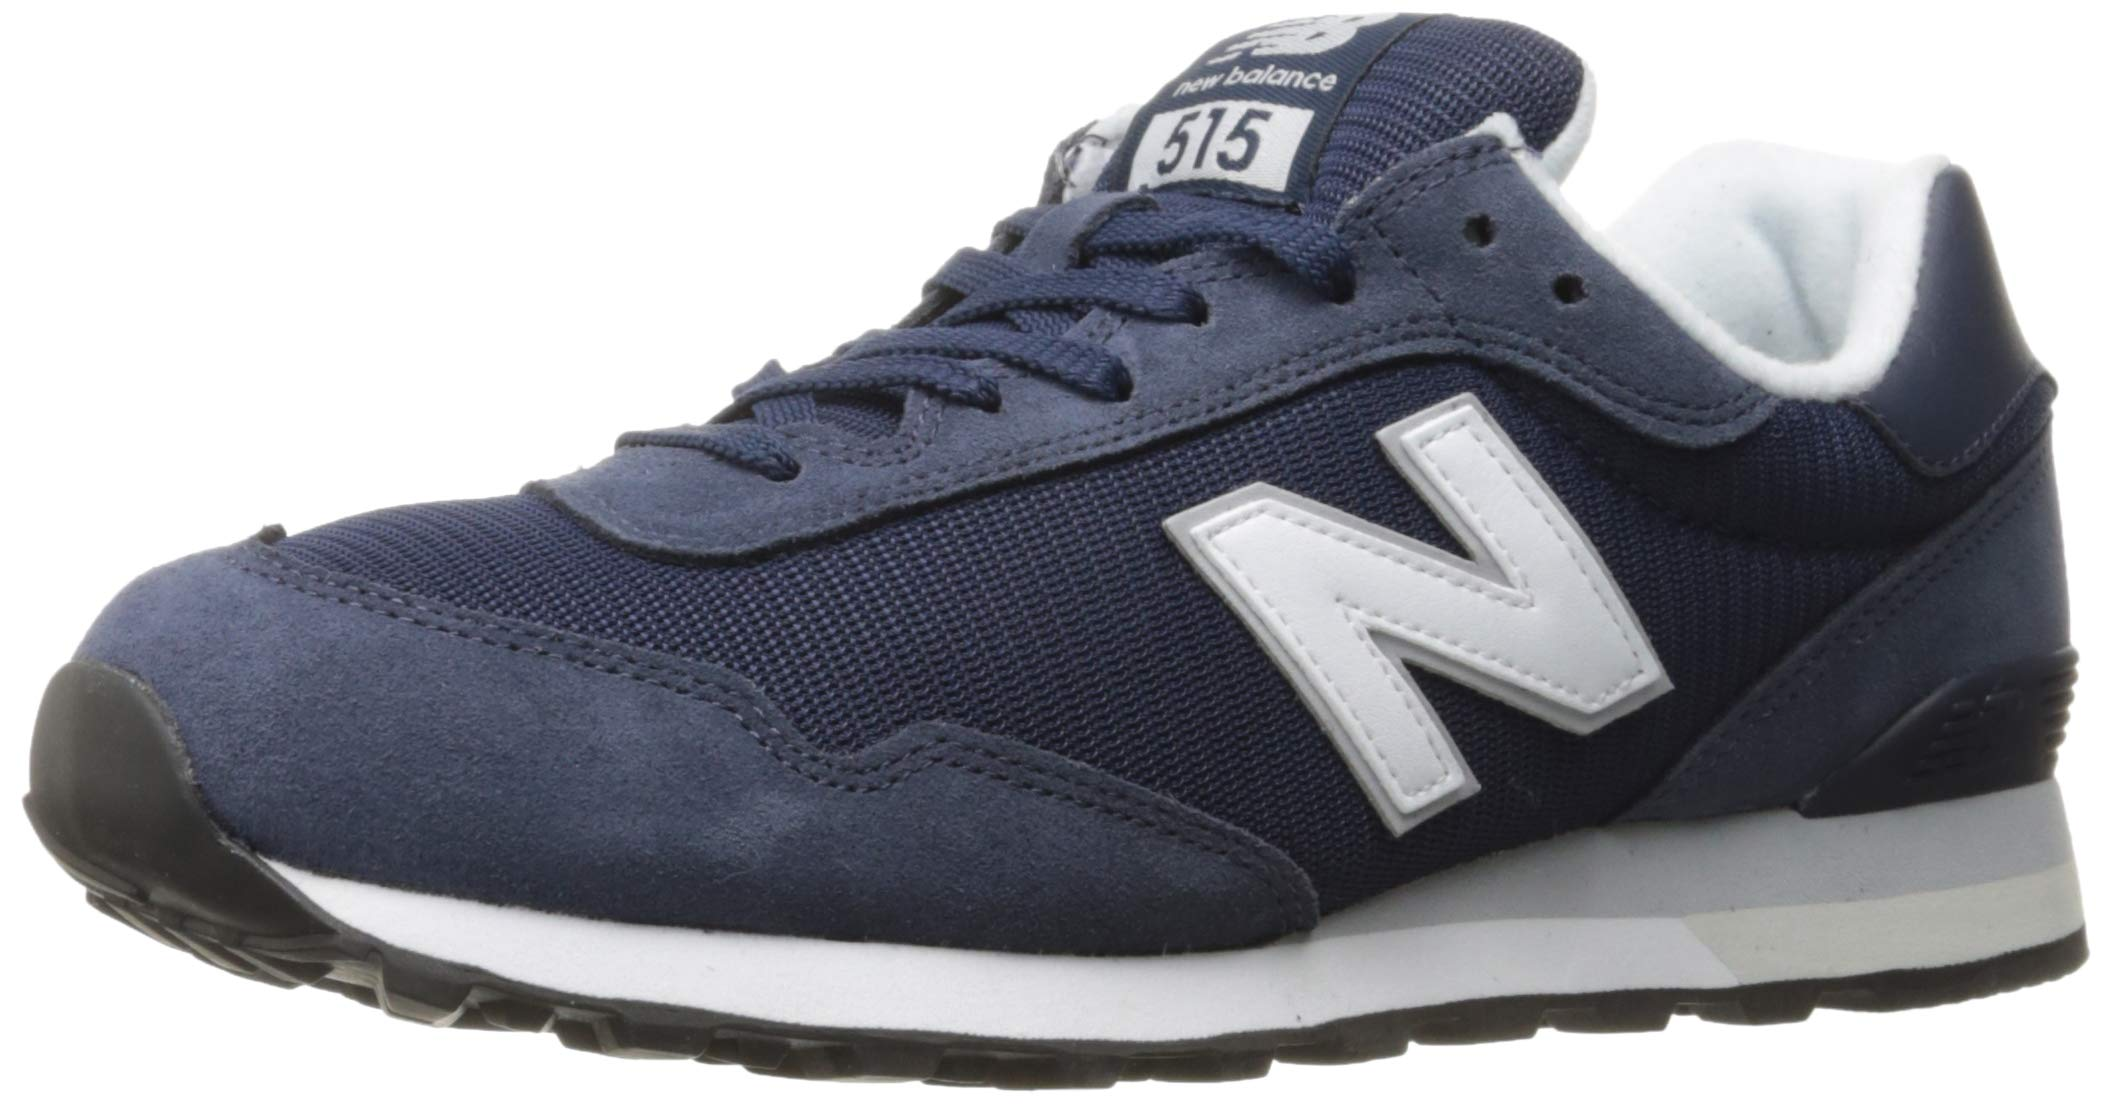 New Balance Men's 515 Core Pack Lifestyle Fashion Sneaker Lifestyle Sneaker, Navy, 9.5 D US